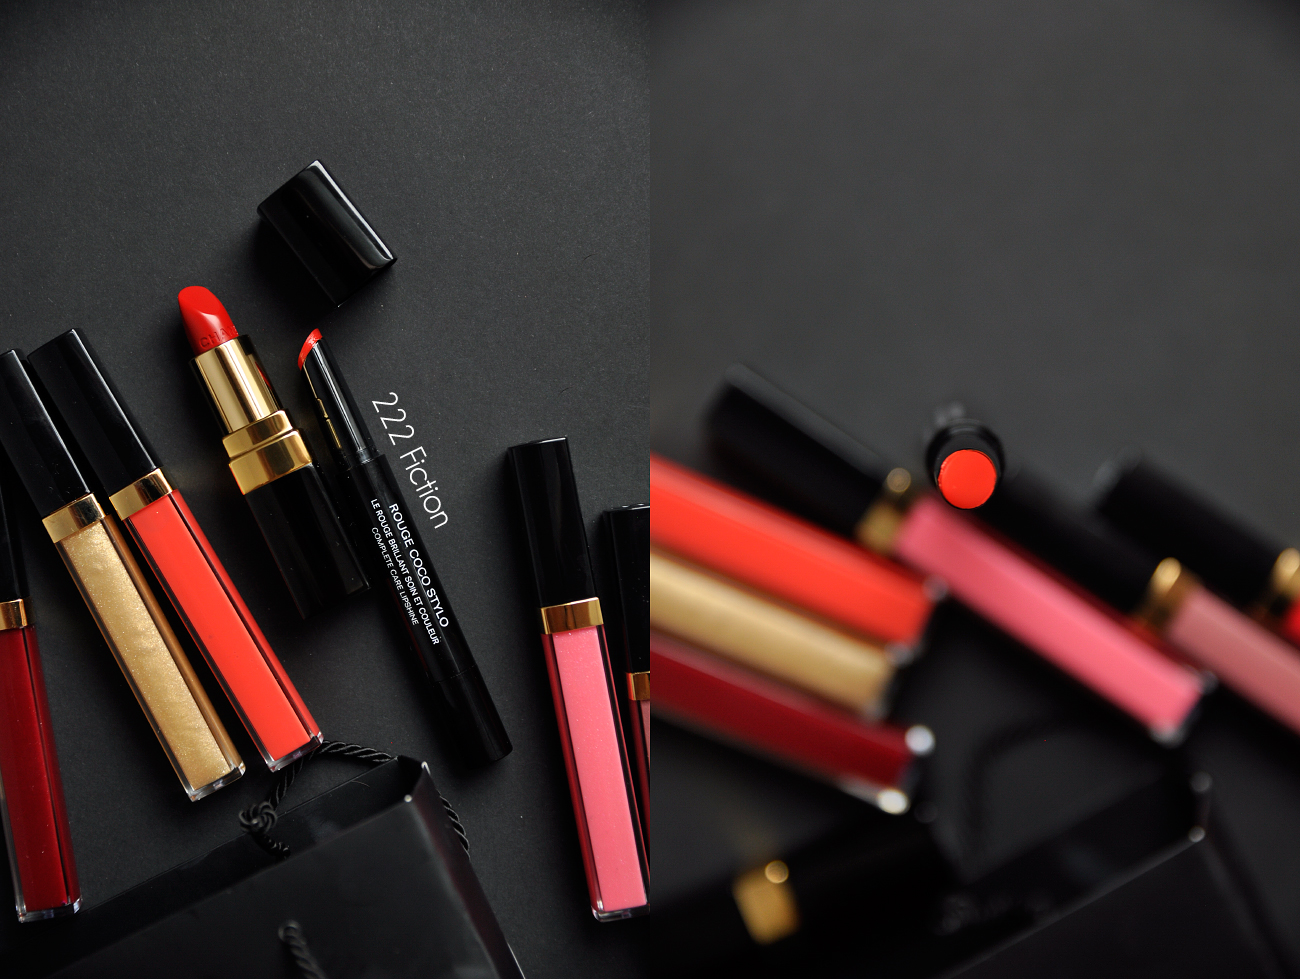 CHANEL-Rouge-Coco-Gloss7